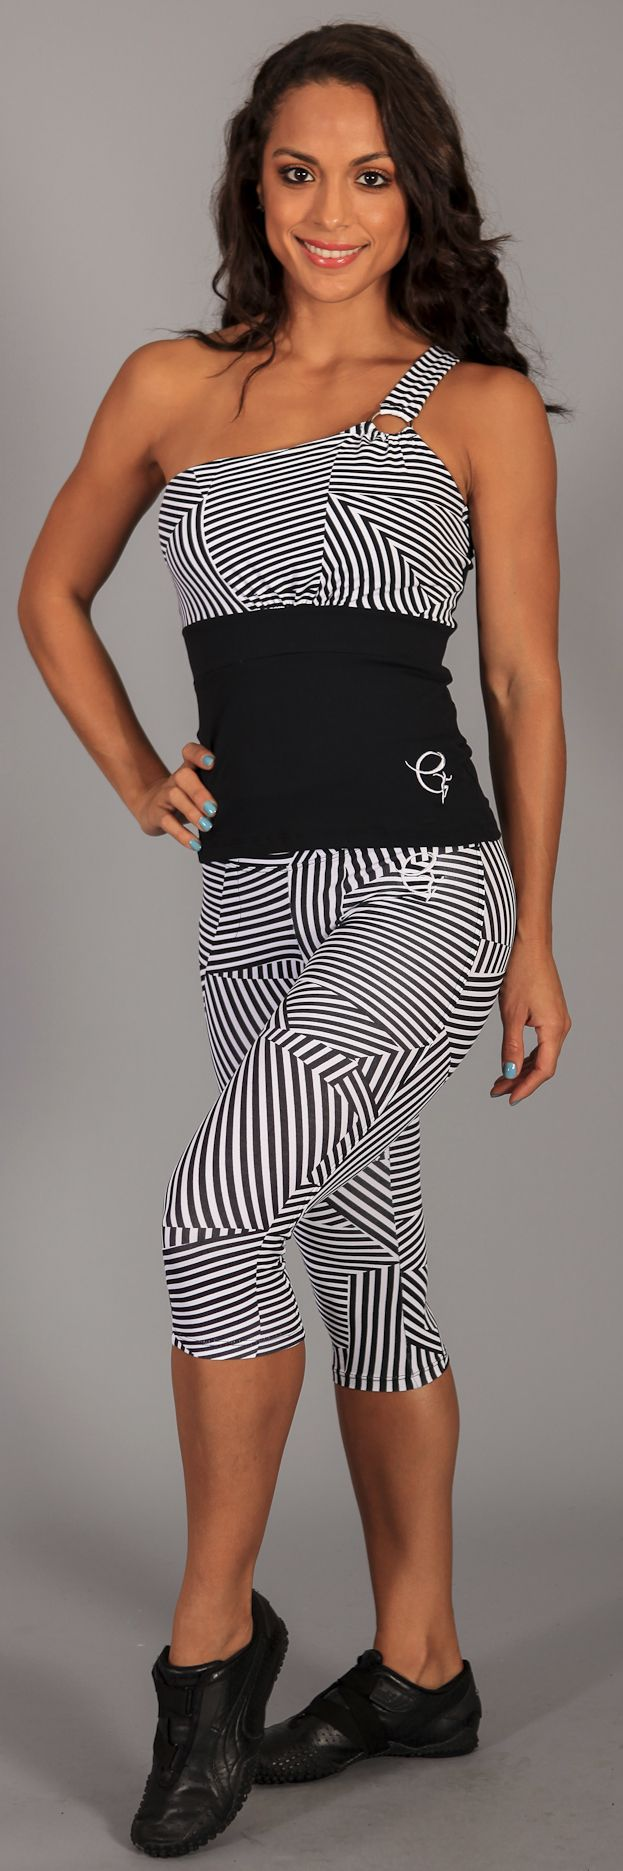 STRIPES! equilibrium activewear flagship capris C337 and super cute one shoulder top LT1004 in Black Stripes, get them now at www.equilibriumactivewear.com #fitness #health #gym #fashion #style